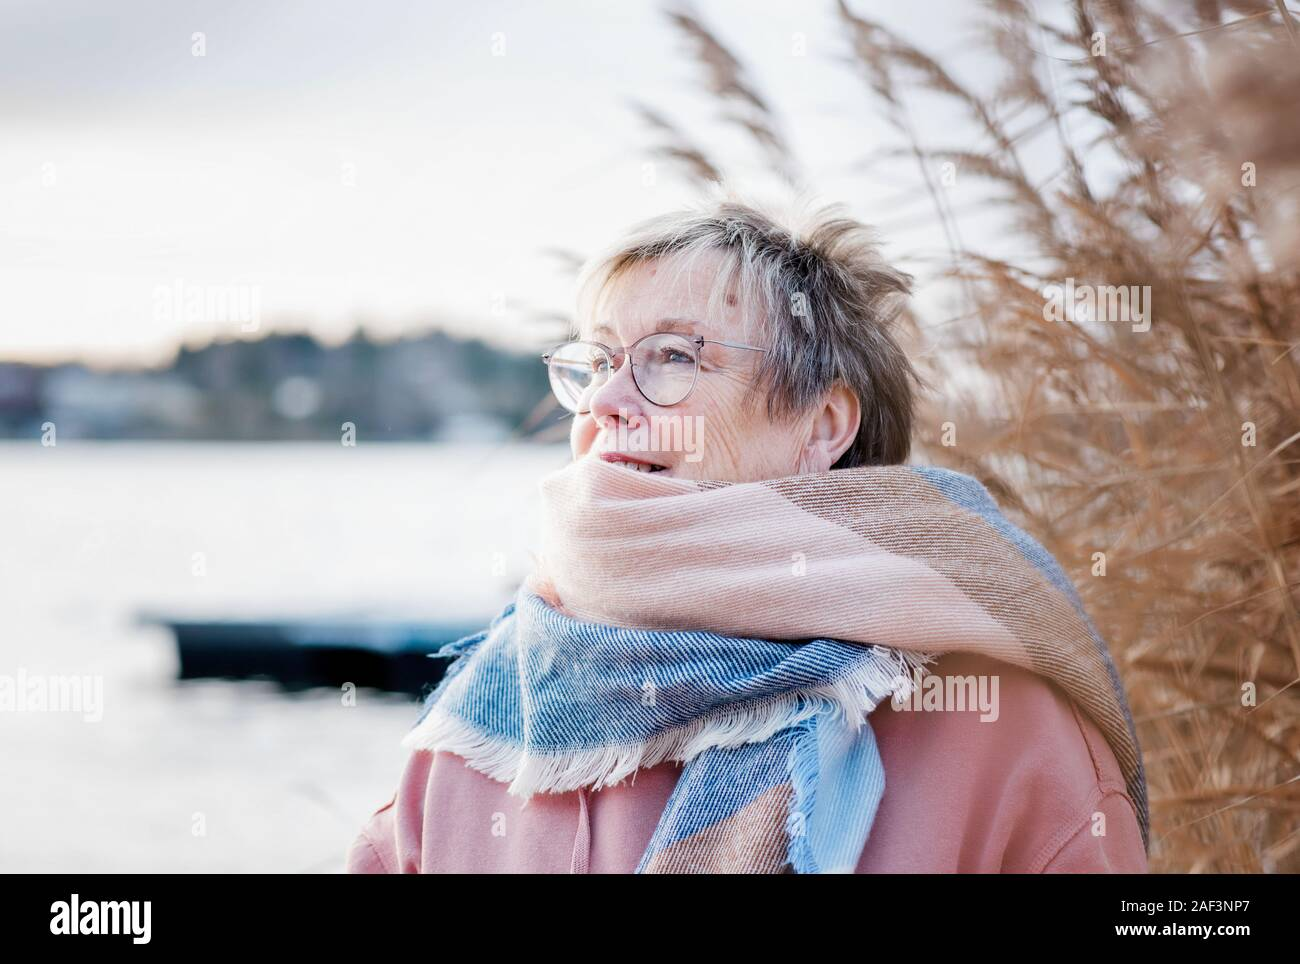 Portrait of woman in her 60's looking happy sitting outside in fall. Stock Photo